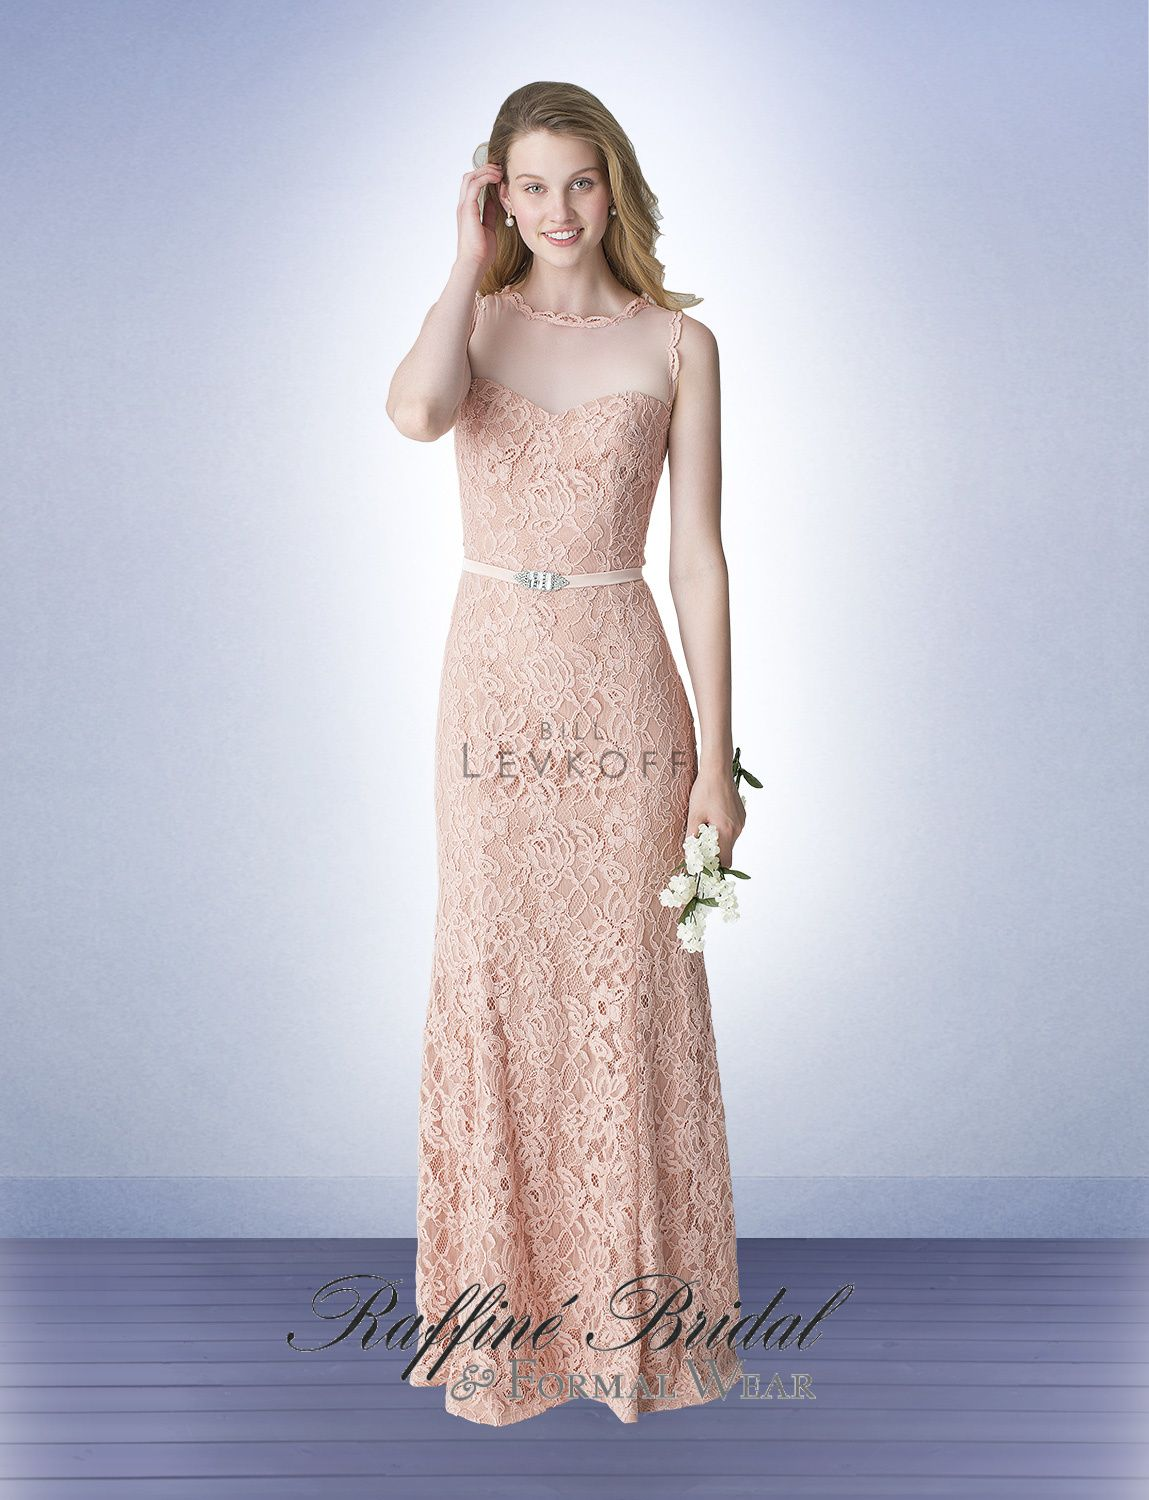 Bill levkoff 1253 antique lace sweetheart gown with an illusion free extra length free us shipping bill levkoff bridesmaid dress style 1253 antique lace sweetheart gown with an illusion top trimed in lace ombrellifo Images